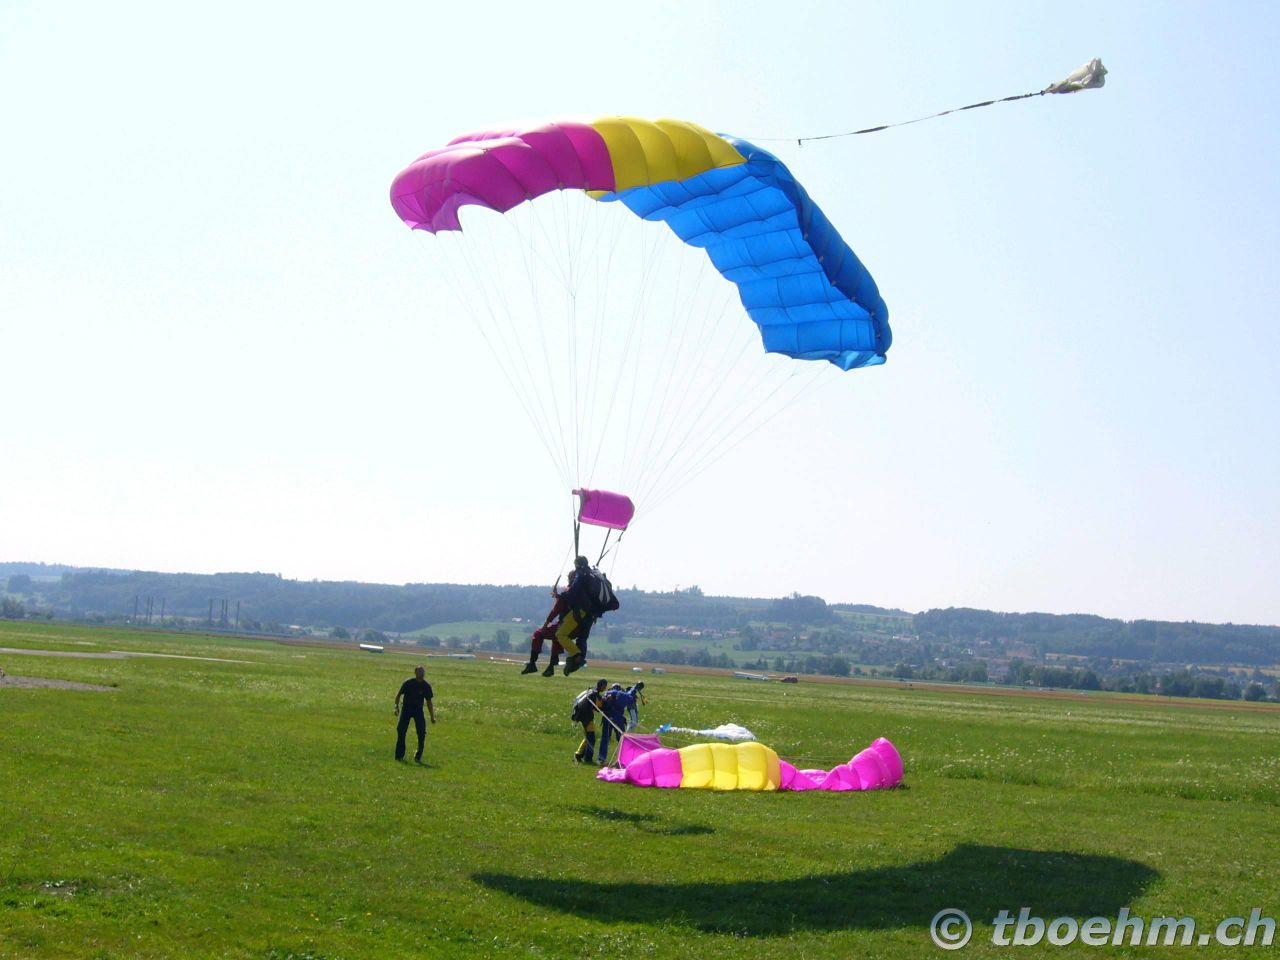 skydive_grenchen_16_07_2006_21_20121125_1435859689